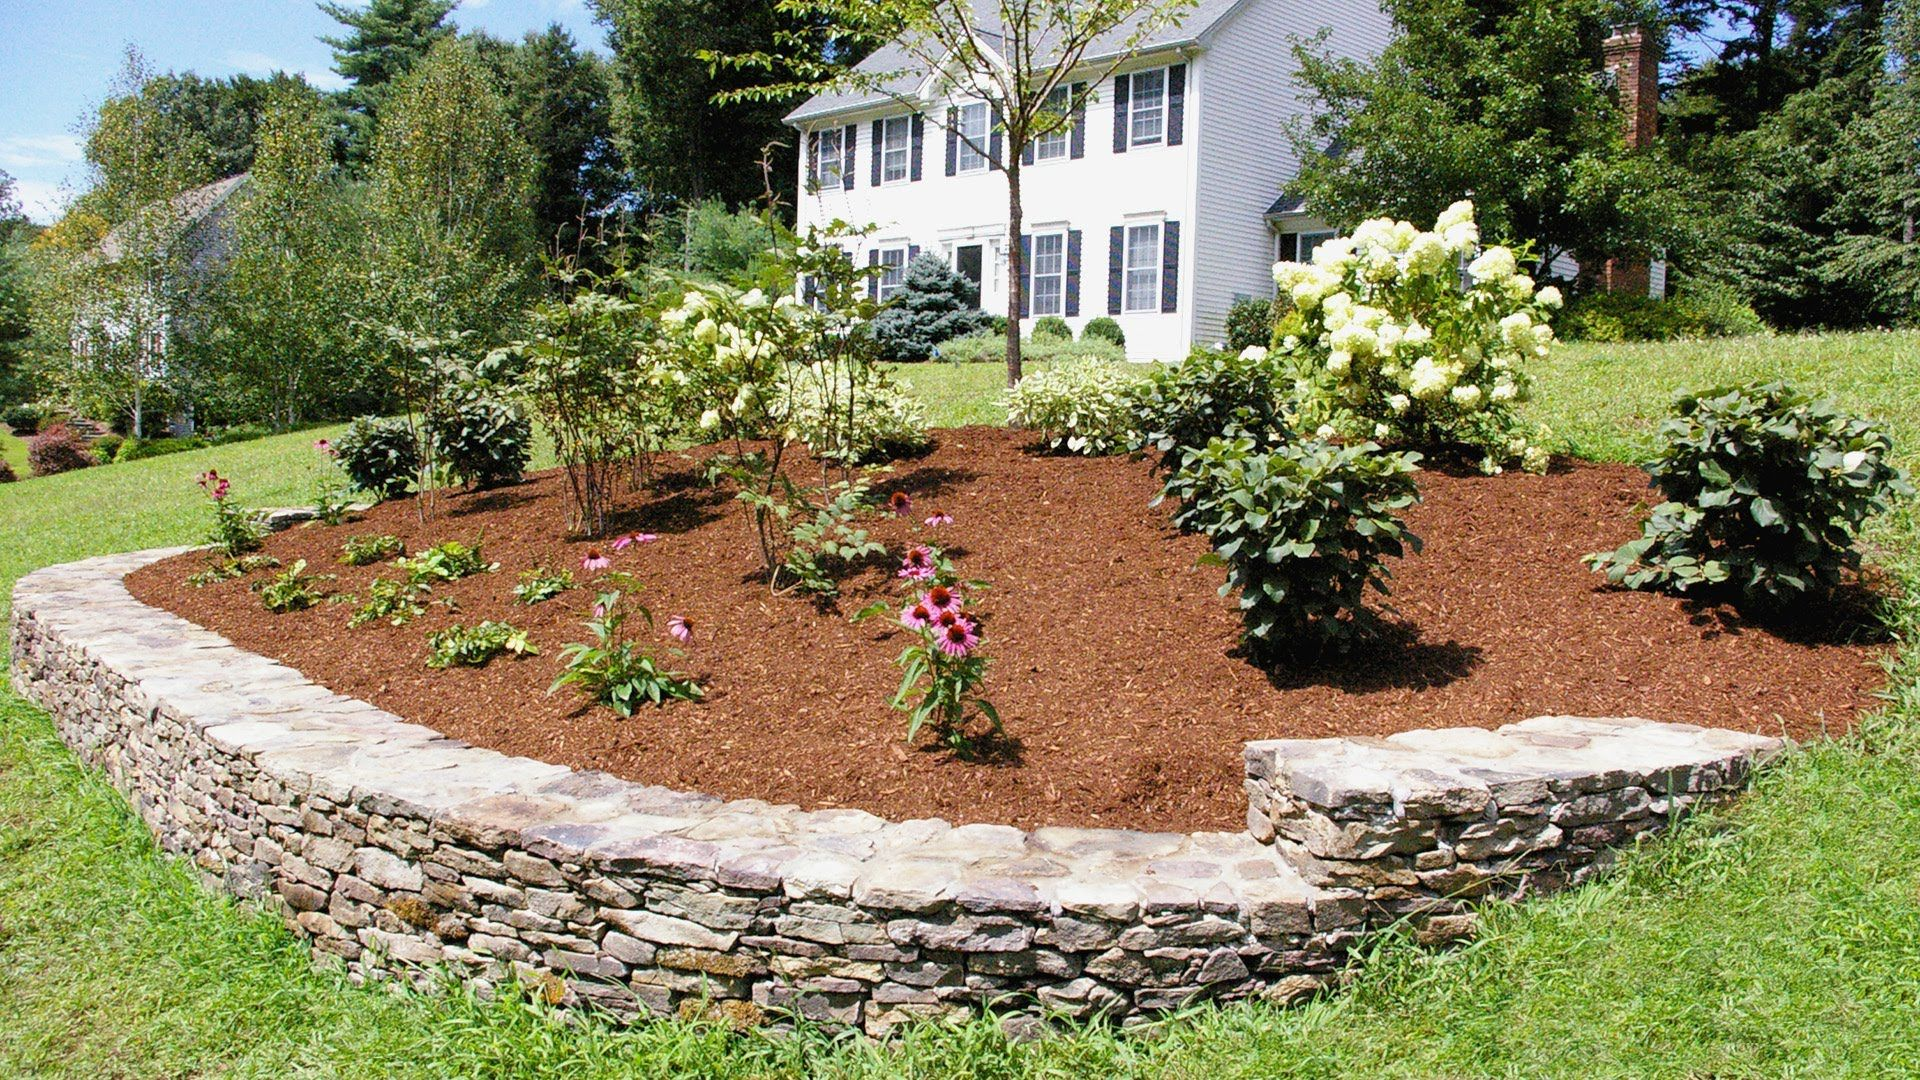 landscaping ideas for a front yard a berm for curb appeal on front yard landscaping ideas id=26731